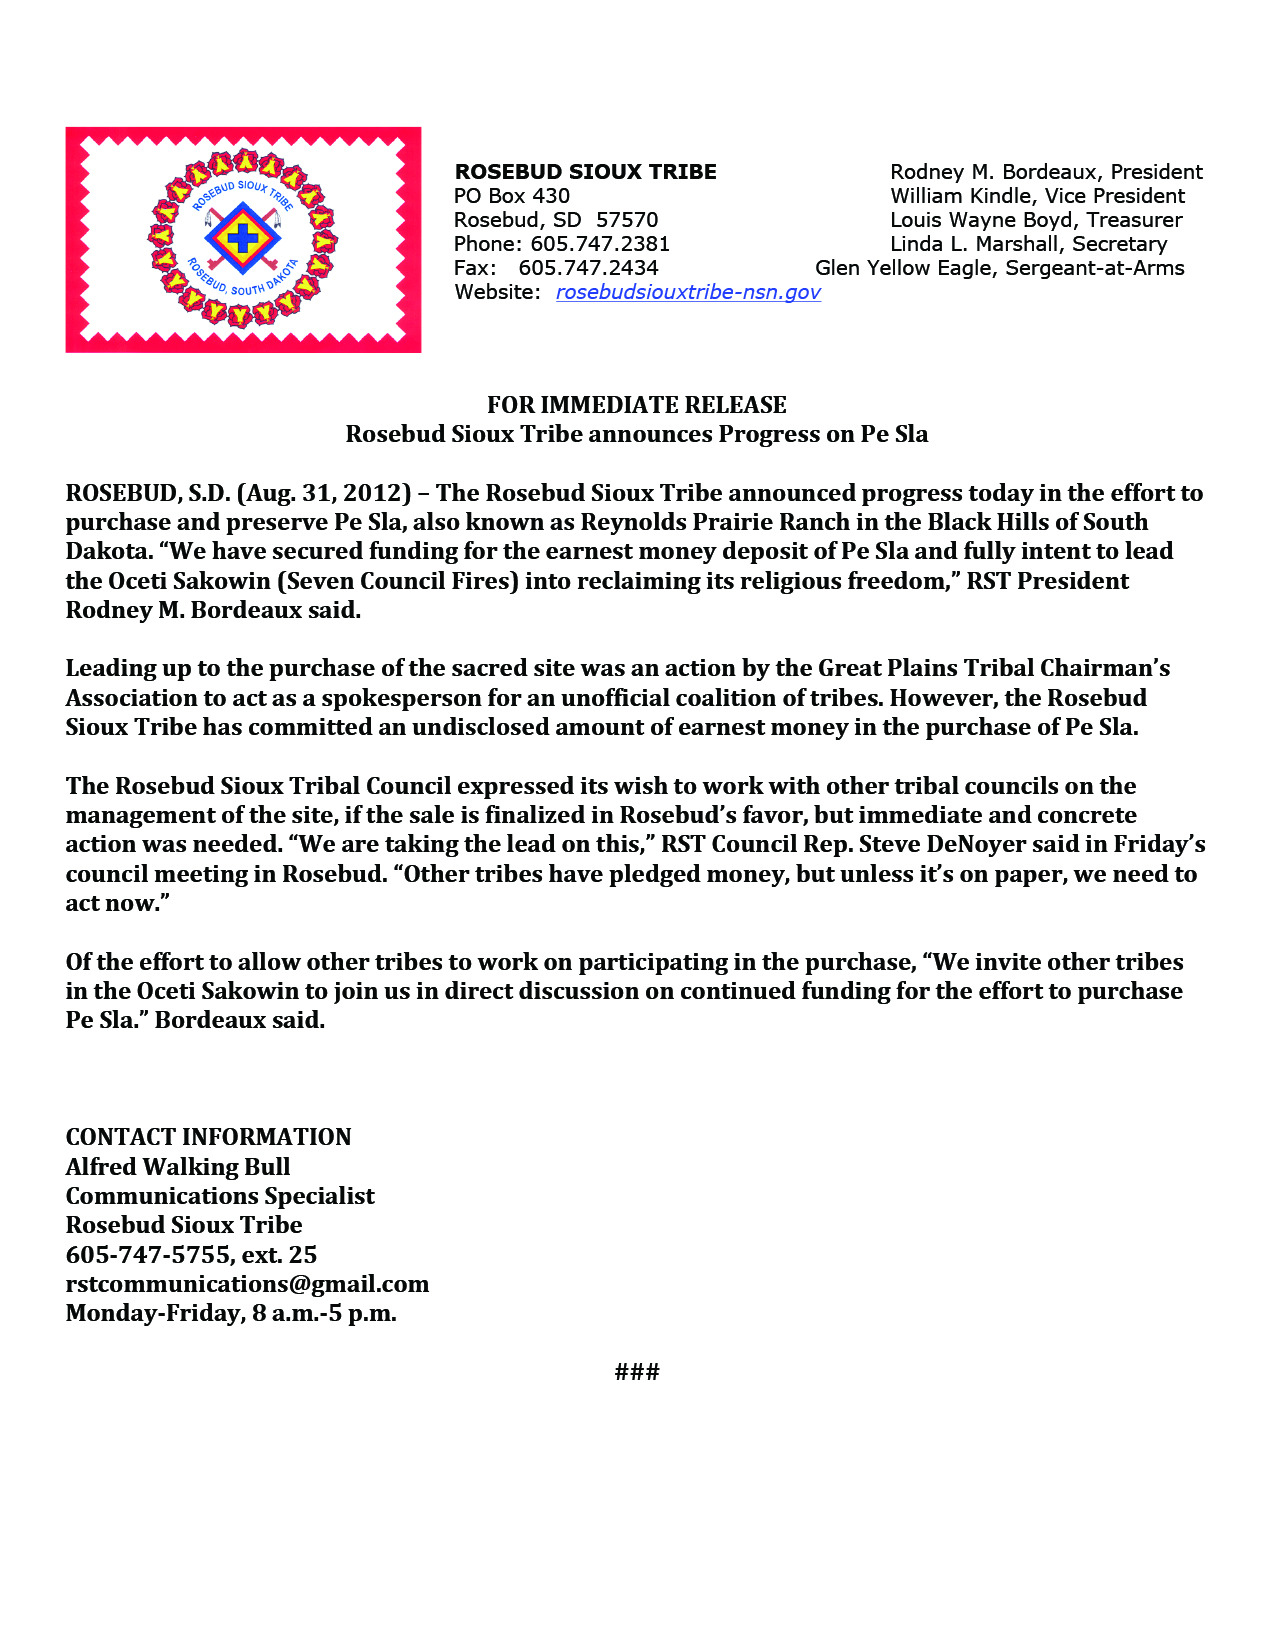 Rosebud Sioux Tribe Announces Progress on Pe Sla